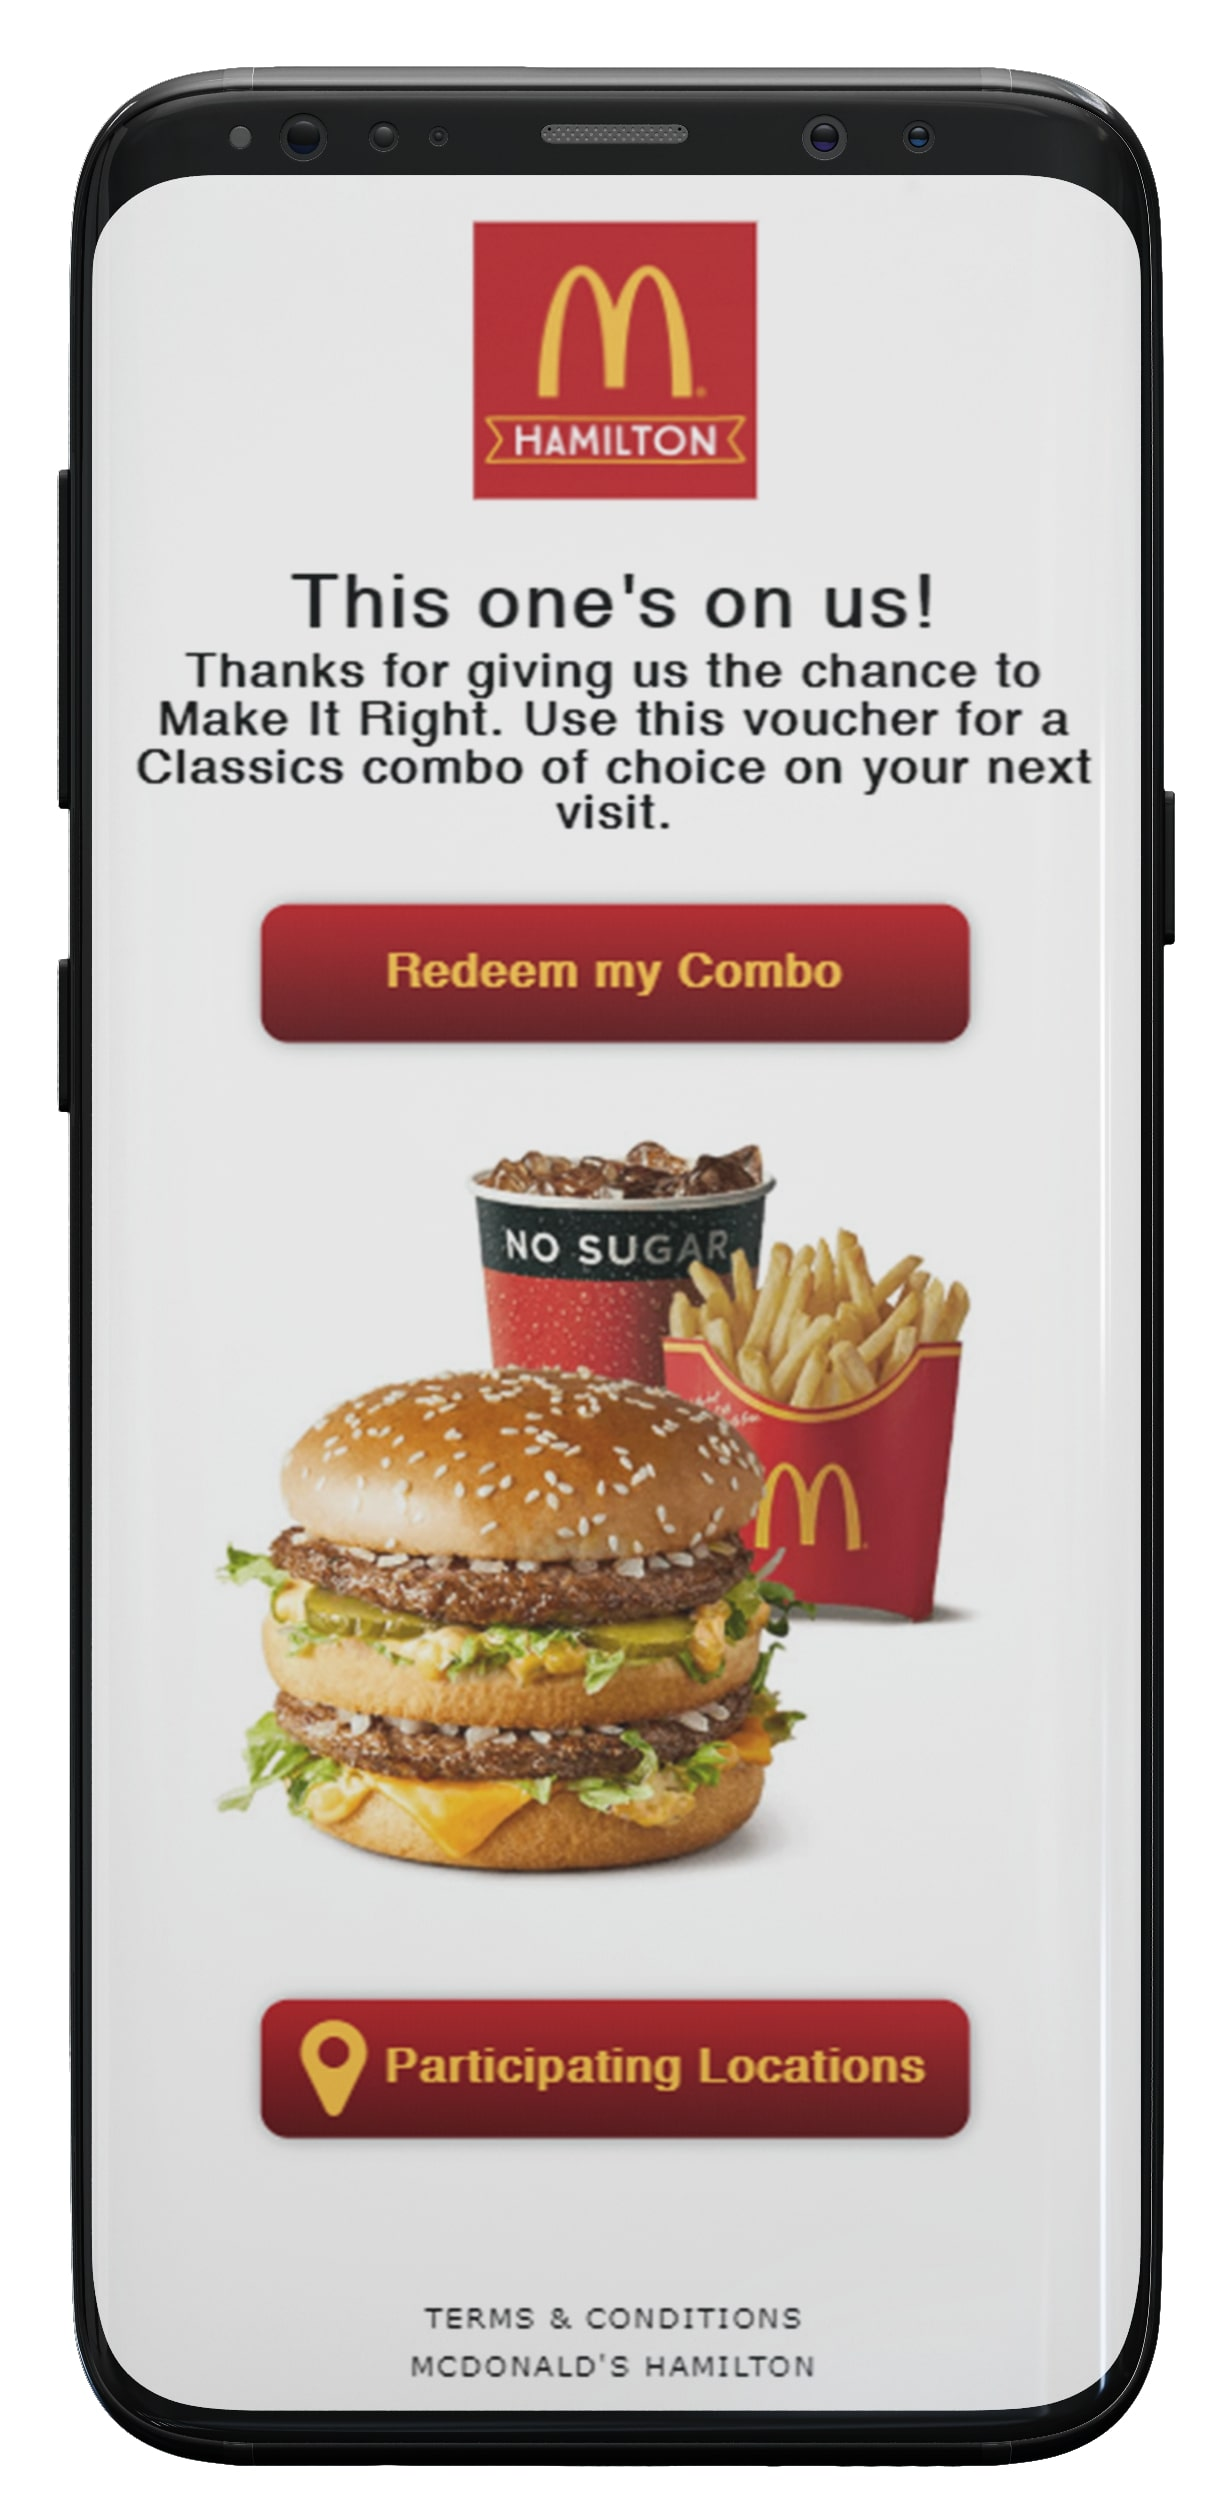 McDonald's Customer Care use case image